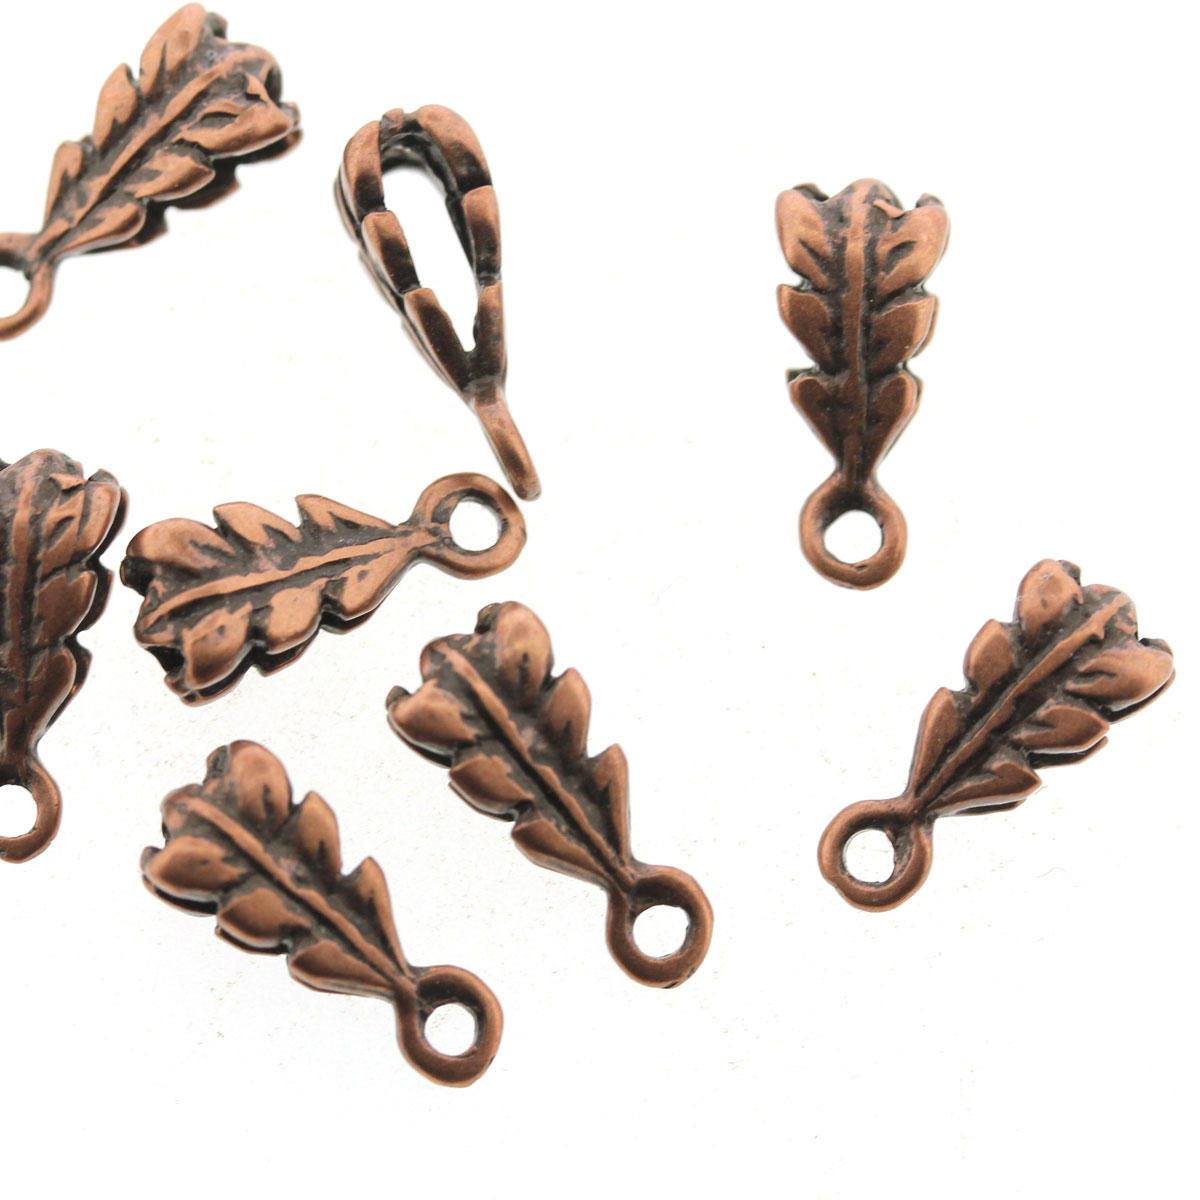 Antique Copper Droppers & Bails